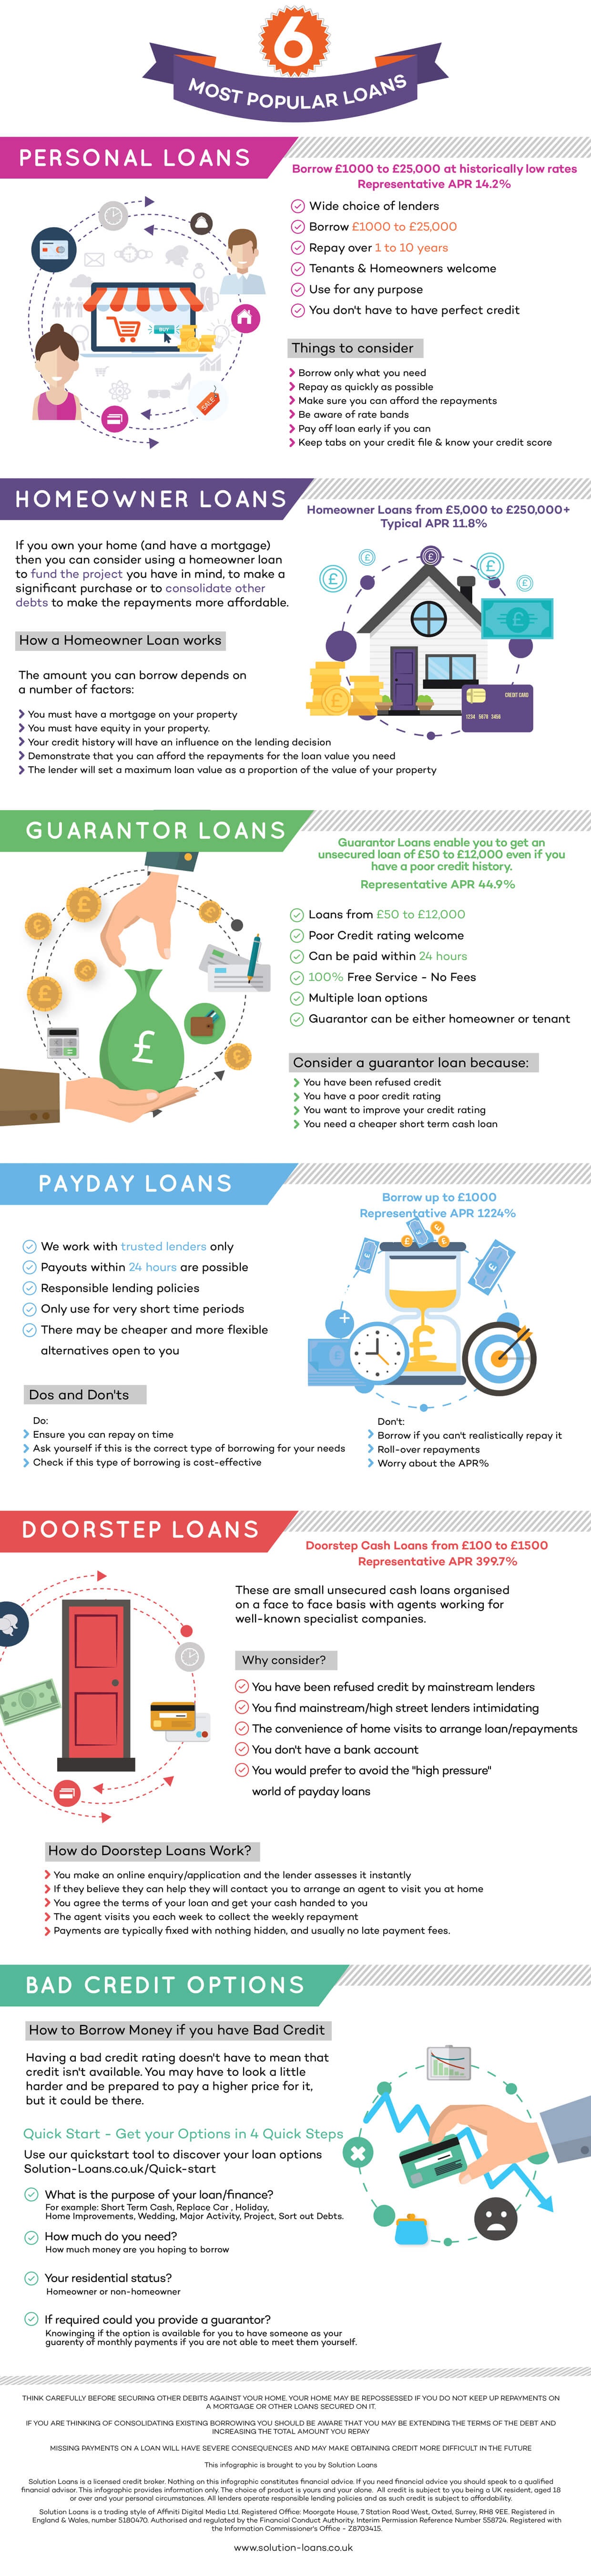 Top 6 Most Popular Loans In UK